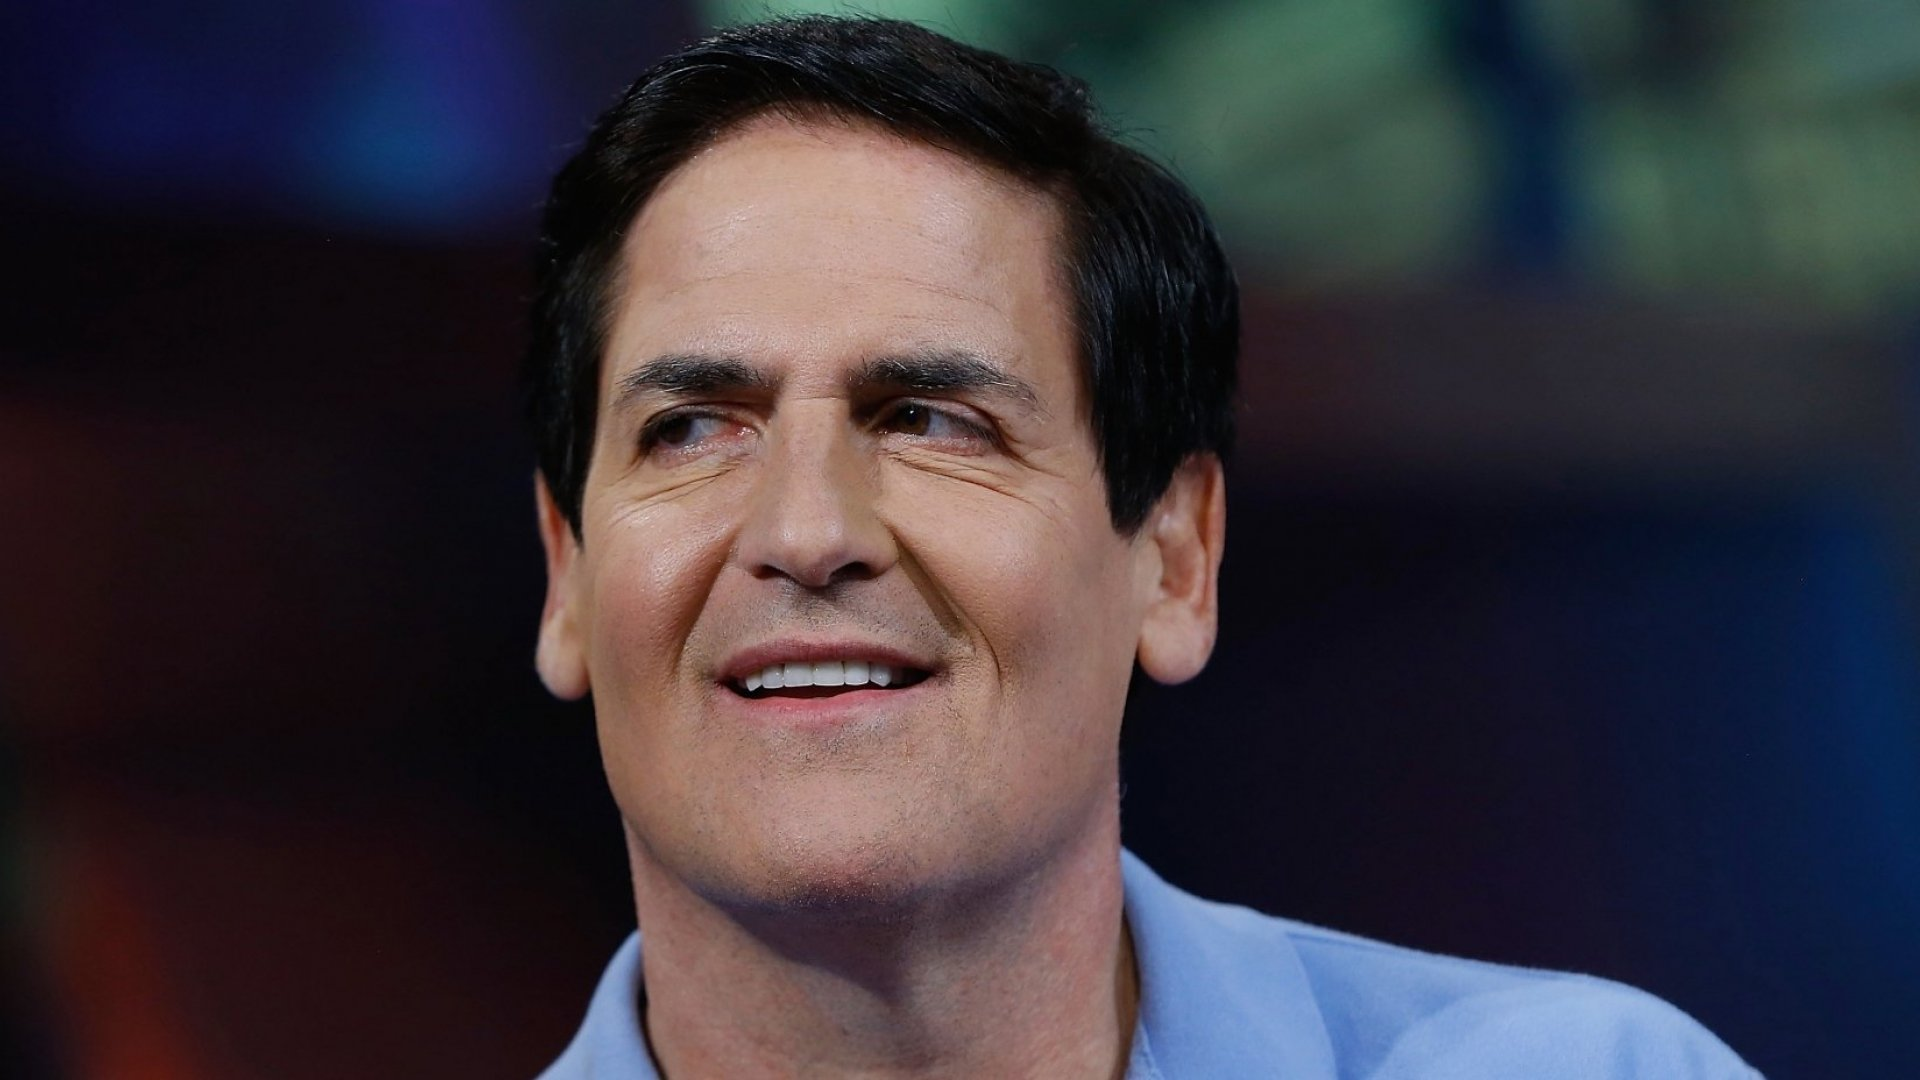 Want to Get Rich? With Just 1 Word, Mark Cuban Reveals How to Become a Self-Made Millionaire